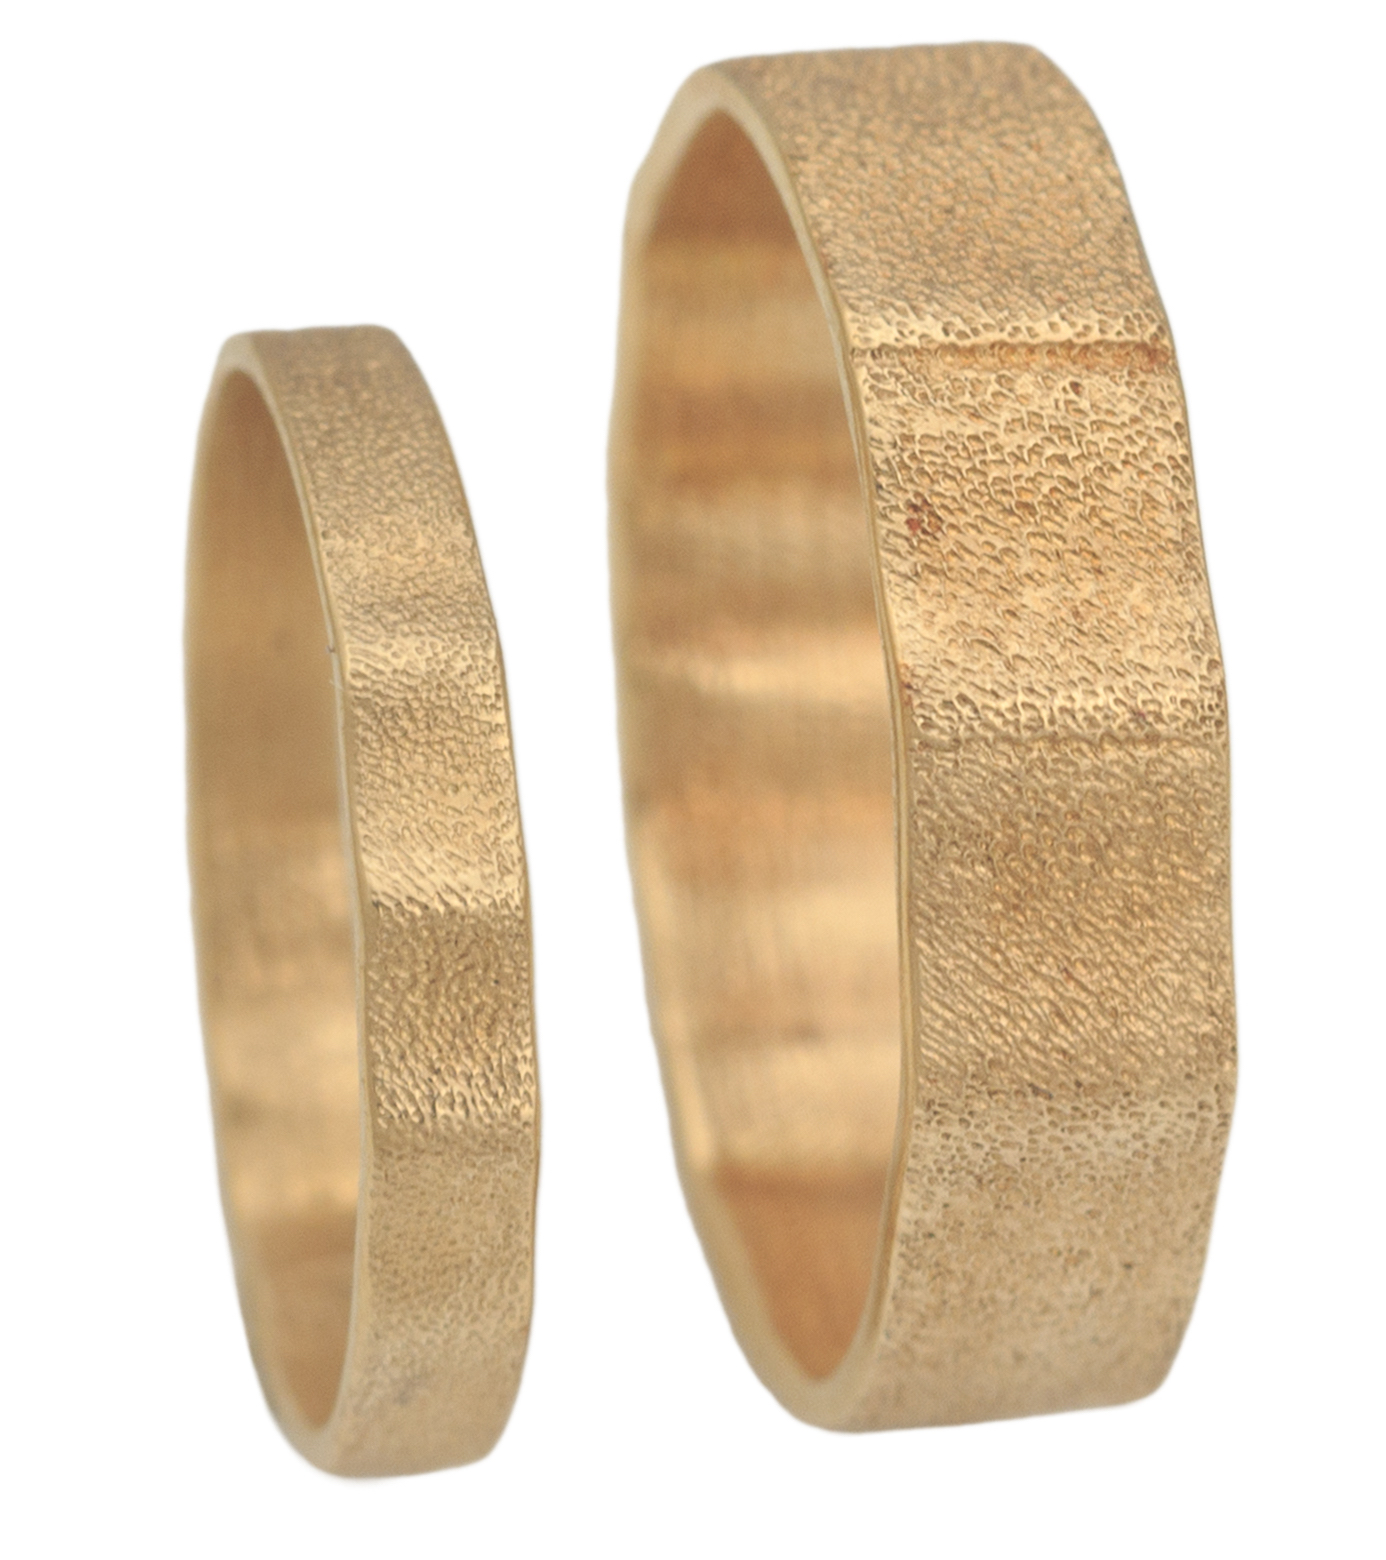 Audrius Krulis Dunes wedding bands | JCK On Your Market